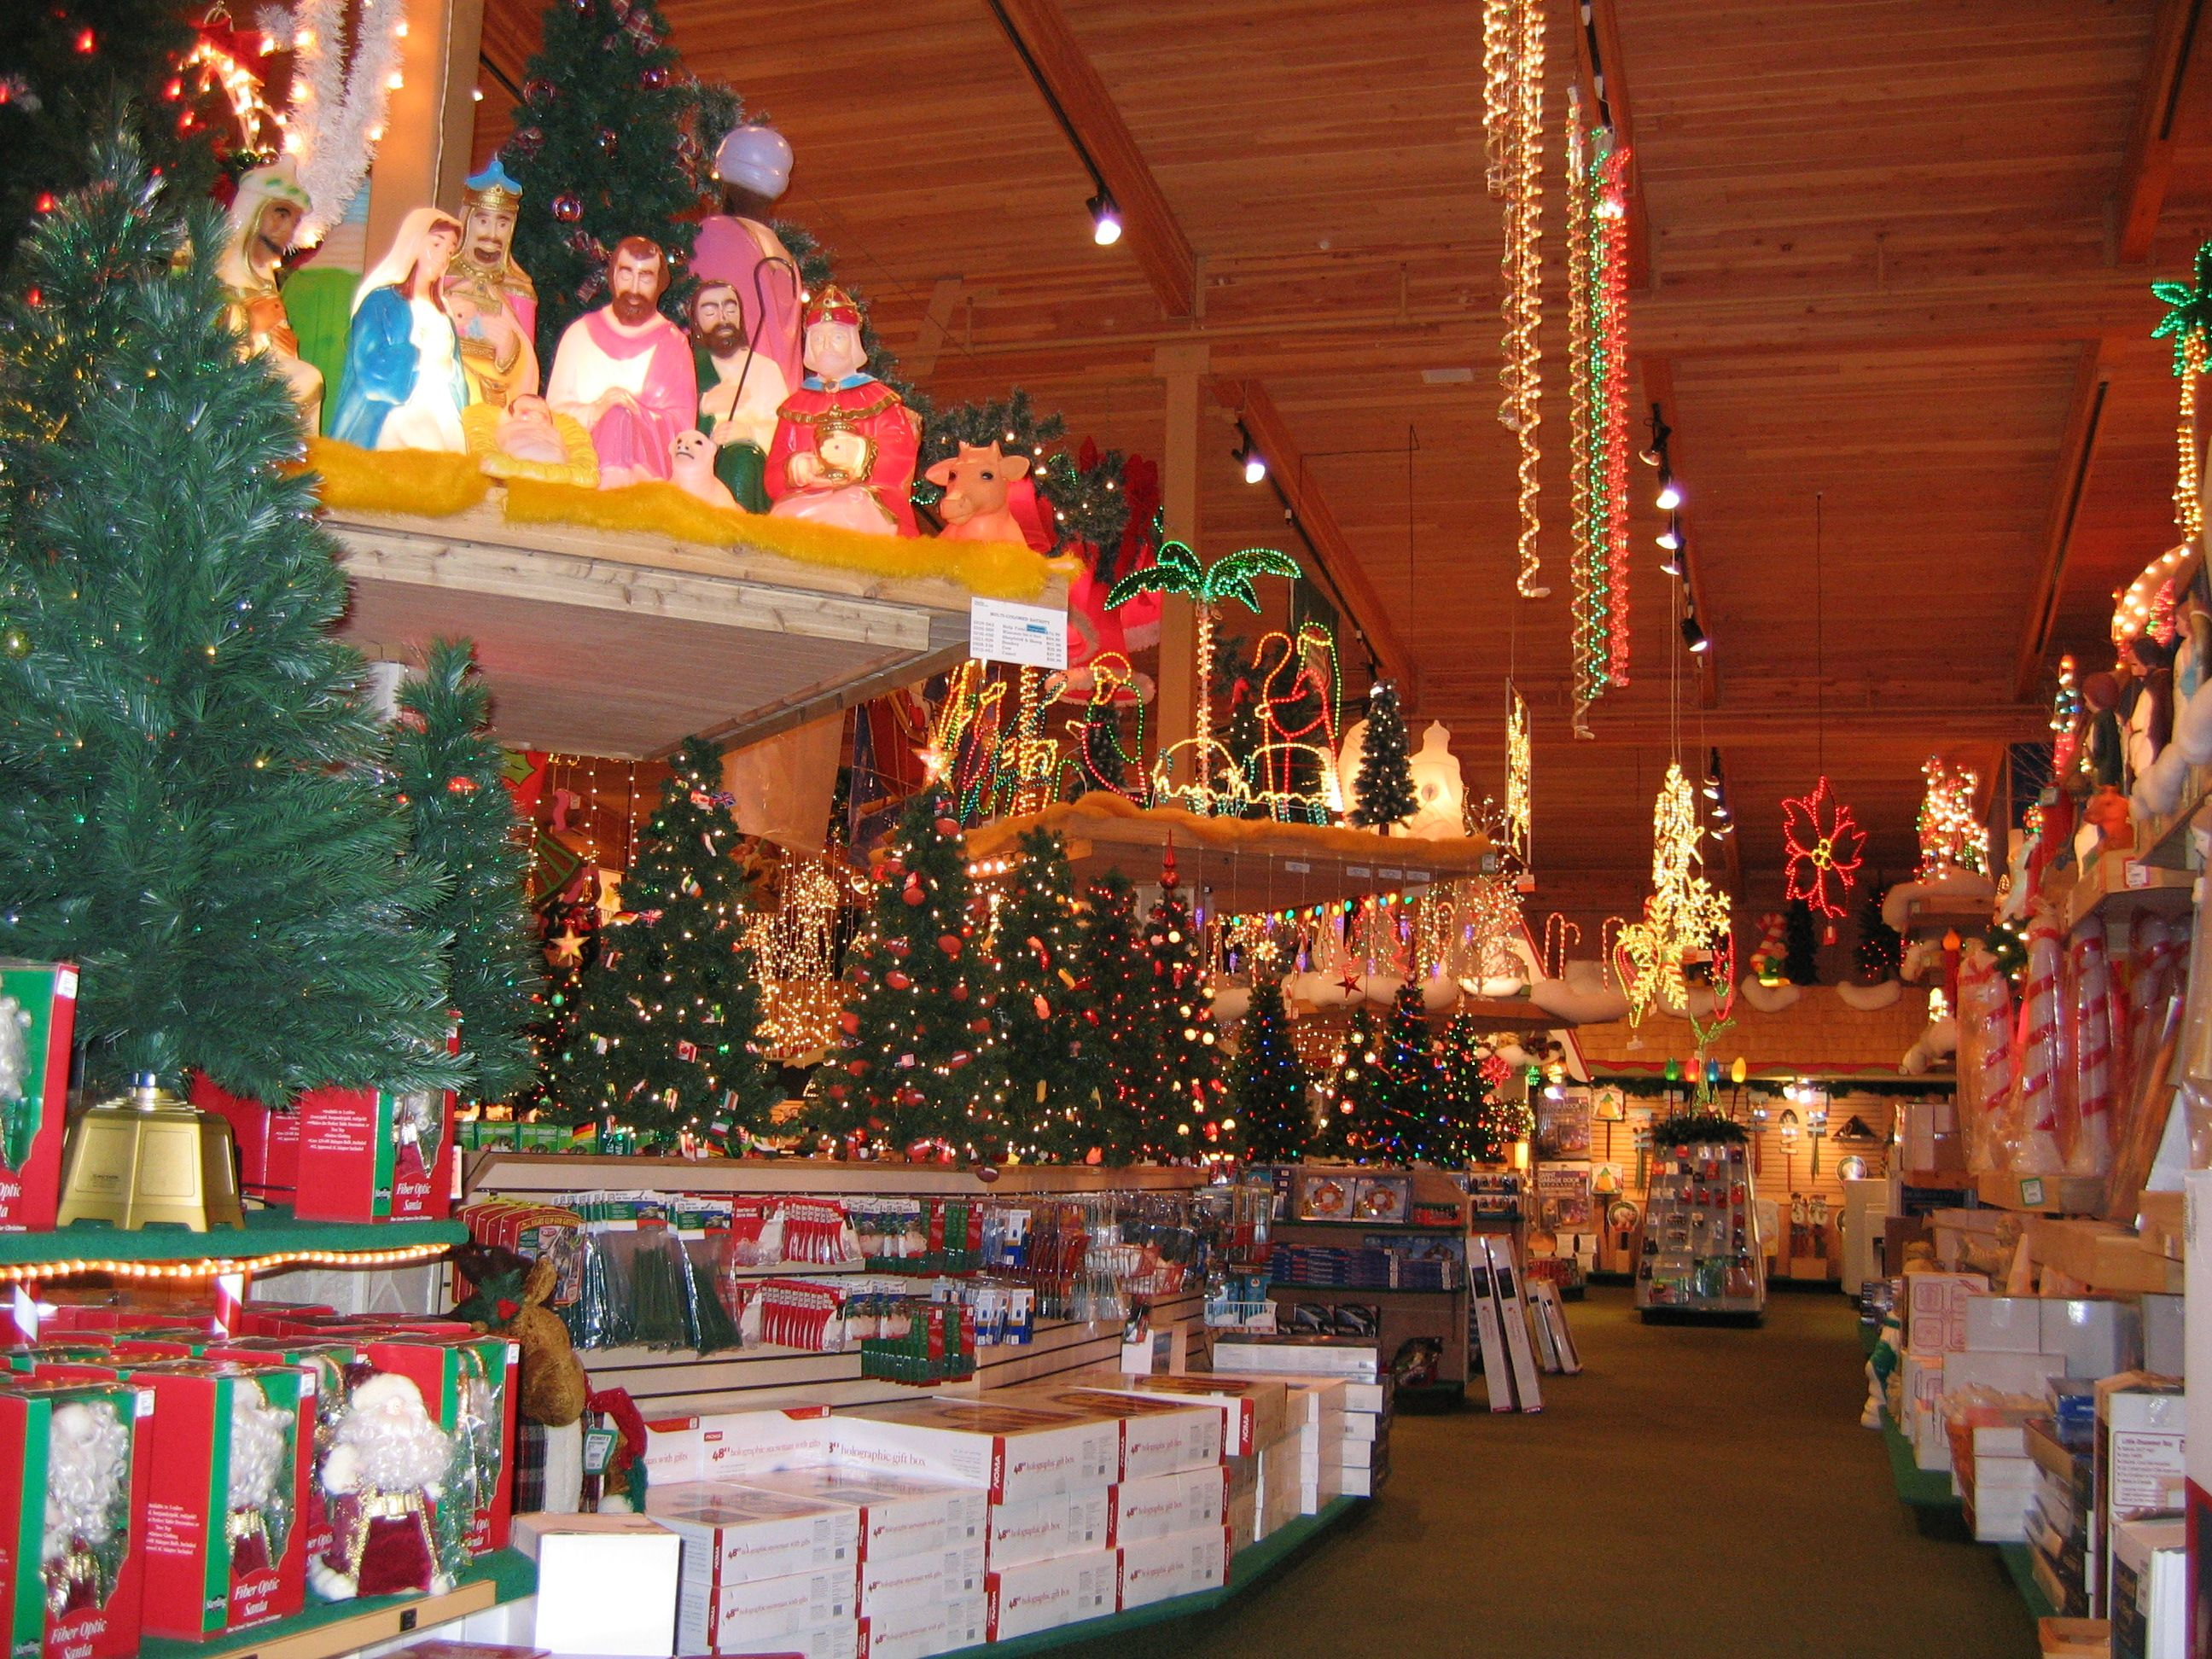 if you like holiday decorations you will love bronners the worlds largest christmas store - Worlds Largest Christmas Store